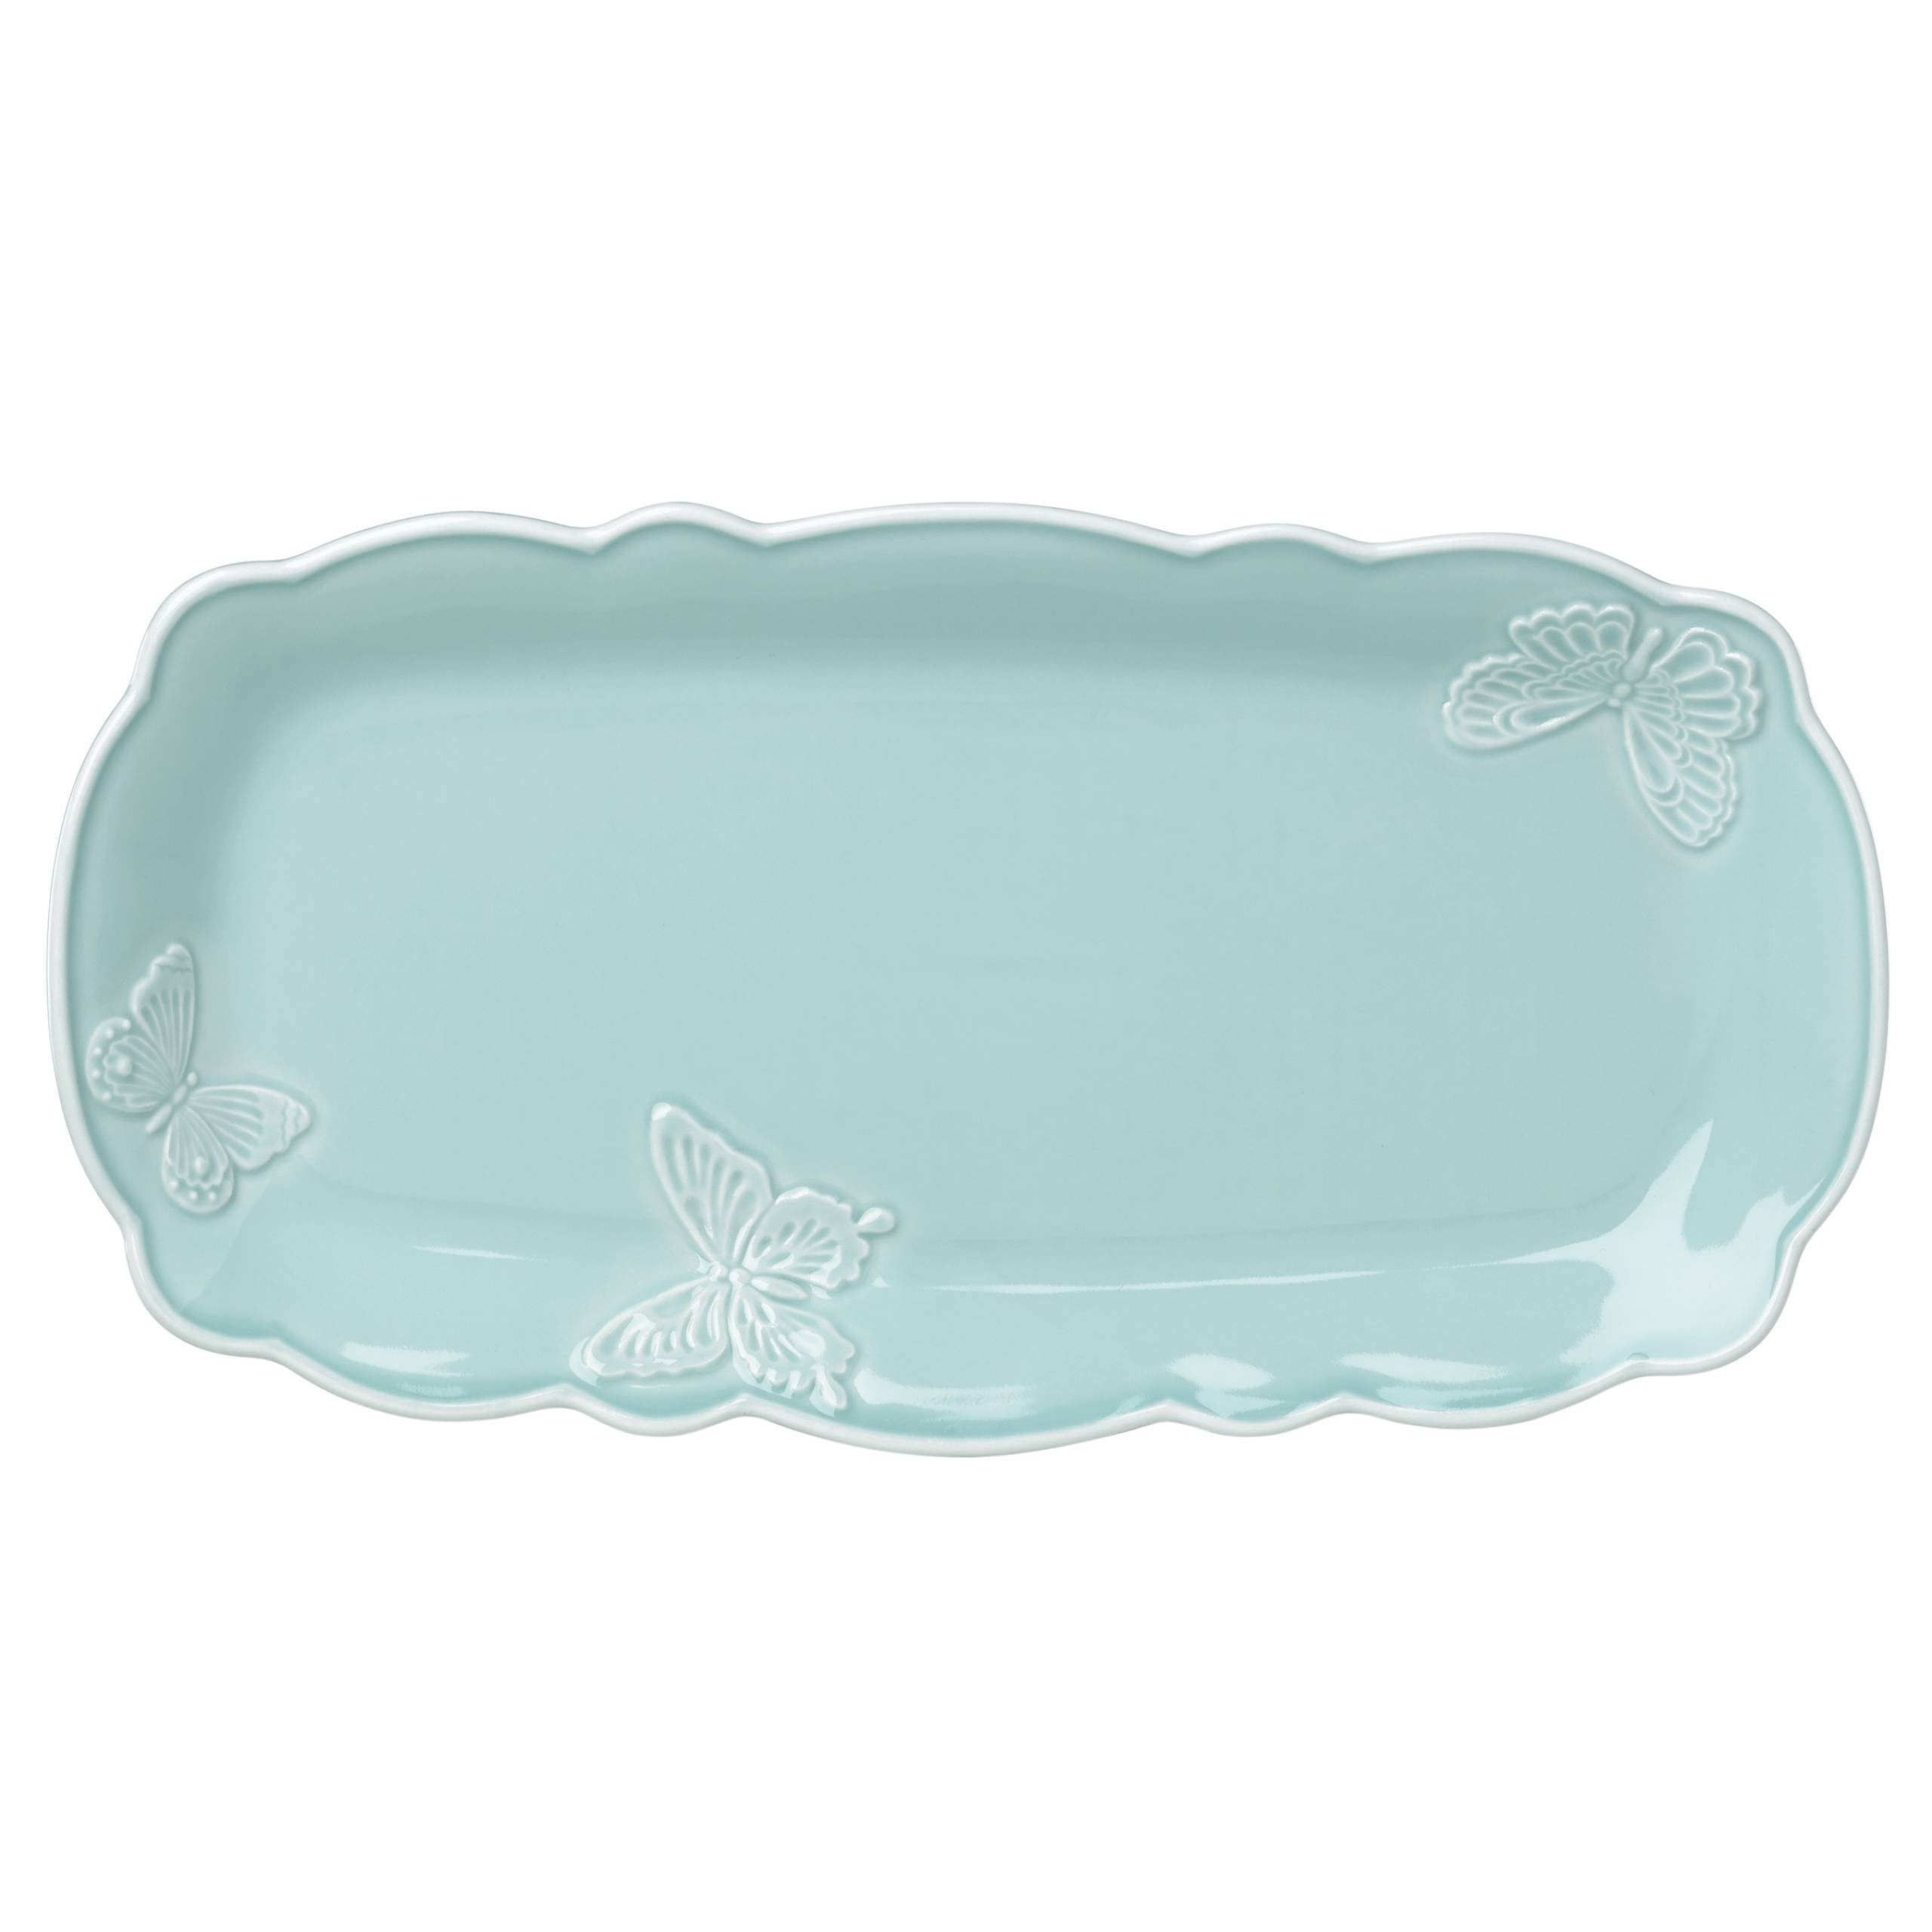 Lenox Butterfly Meadow Carved Blue Hors D 'Oeuvre Tray